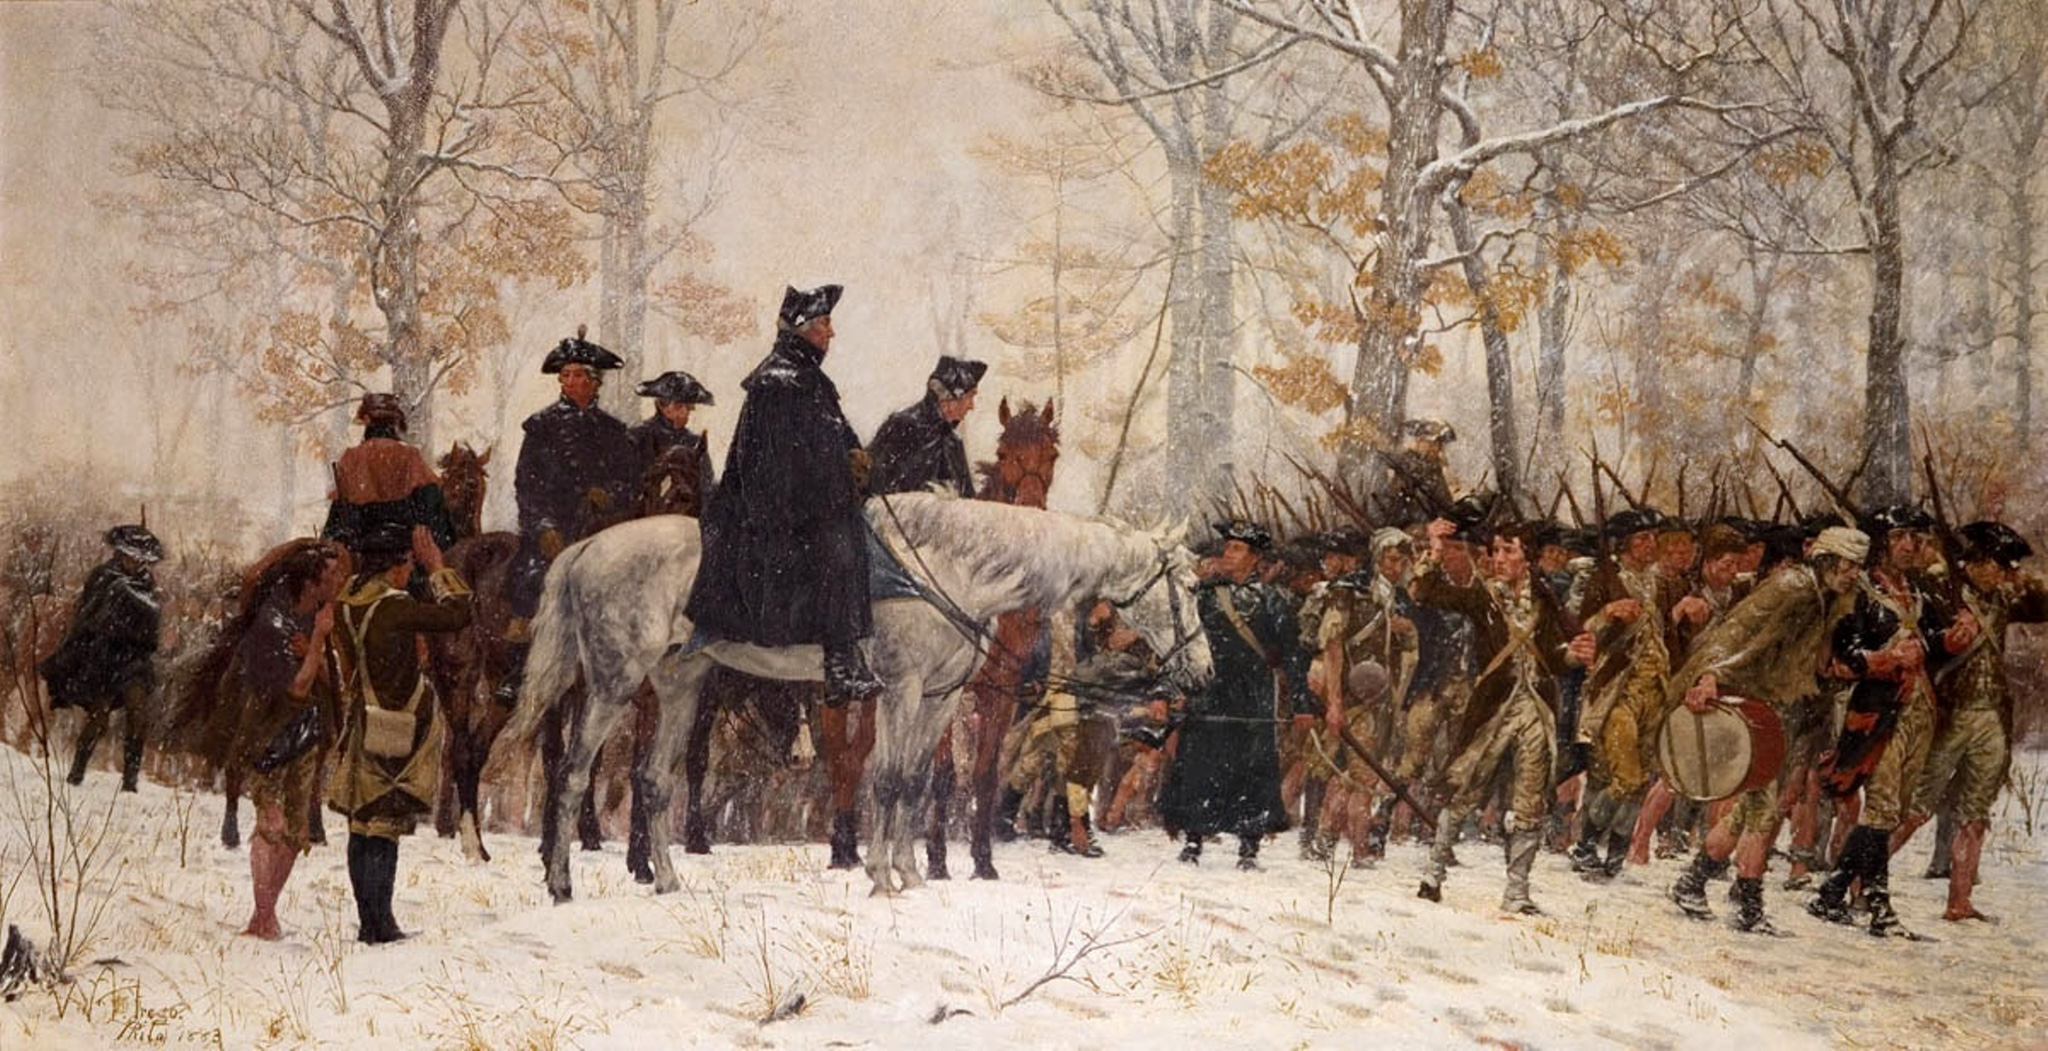 March to Valley Forge by Trego